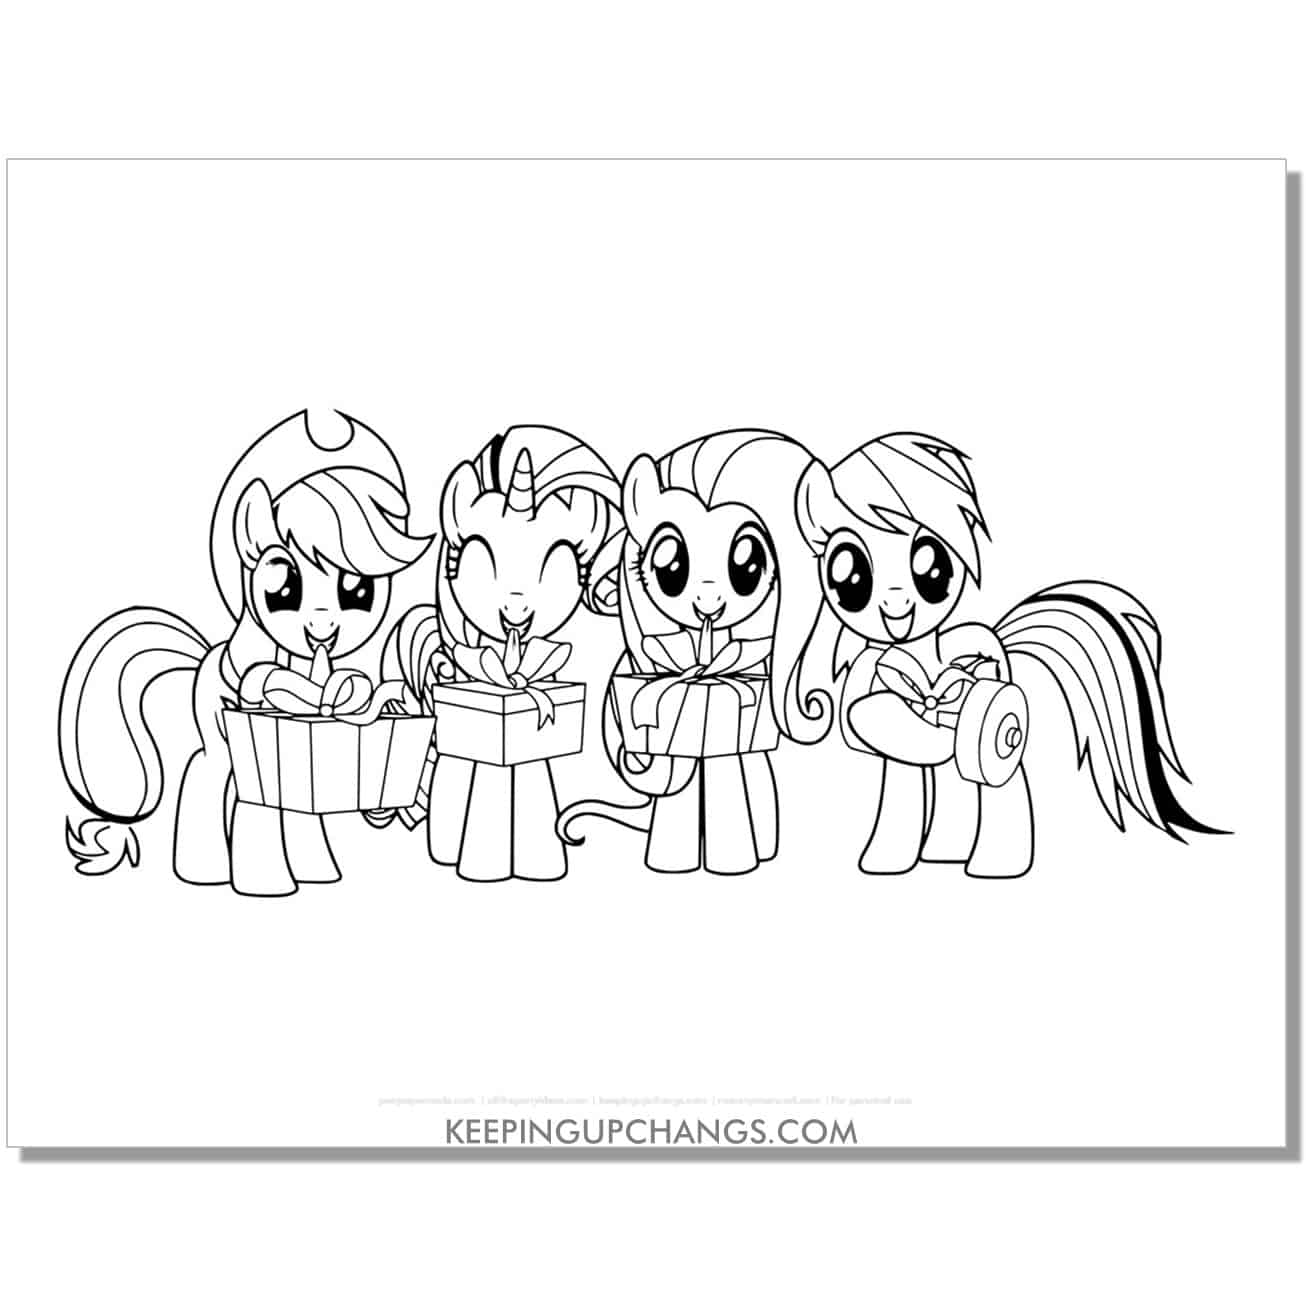 free christmas my little pony coloring page.